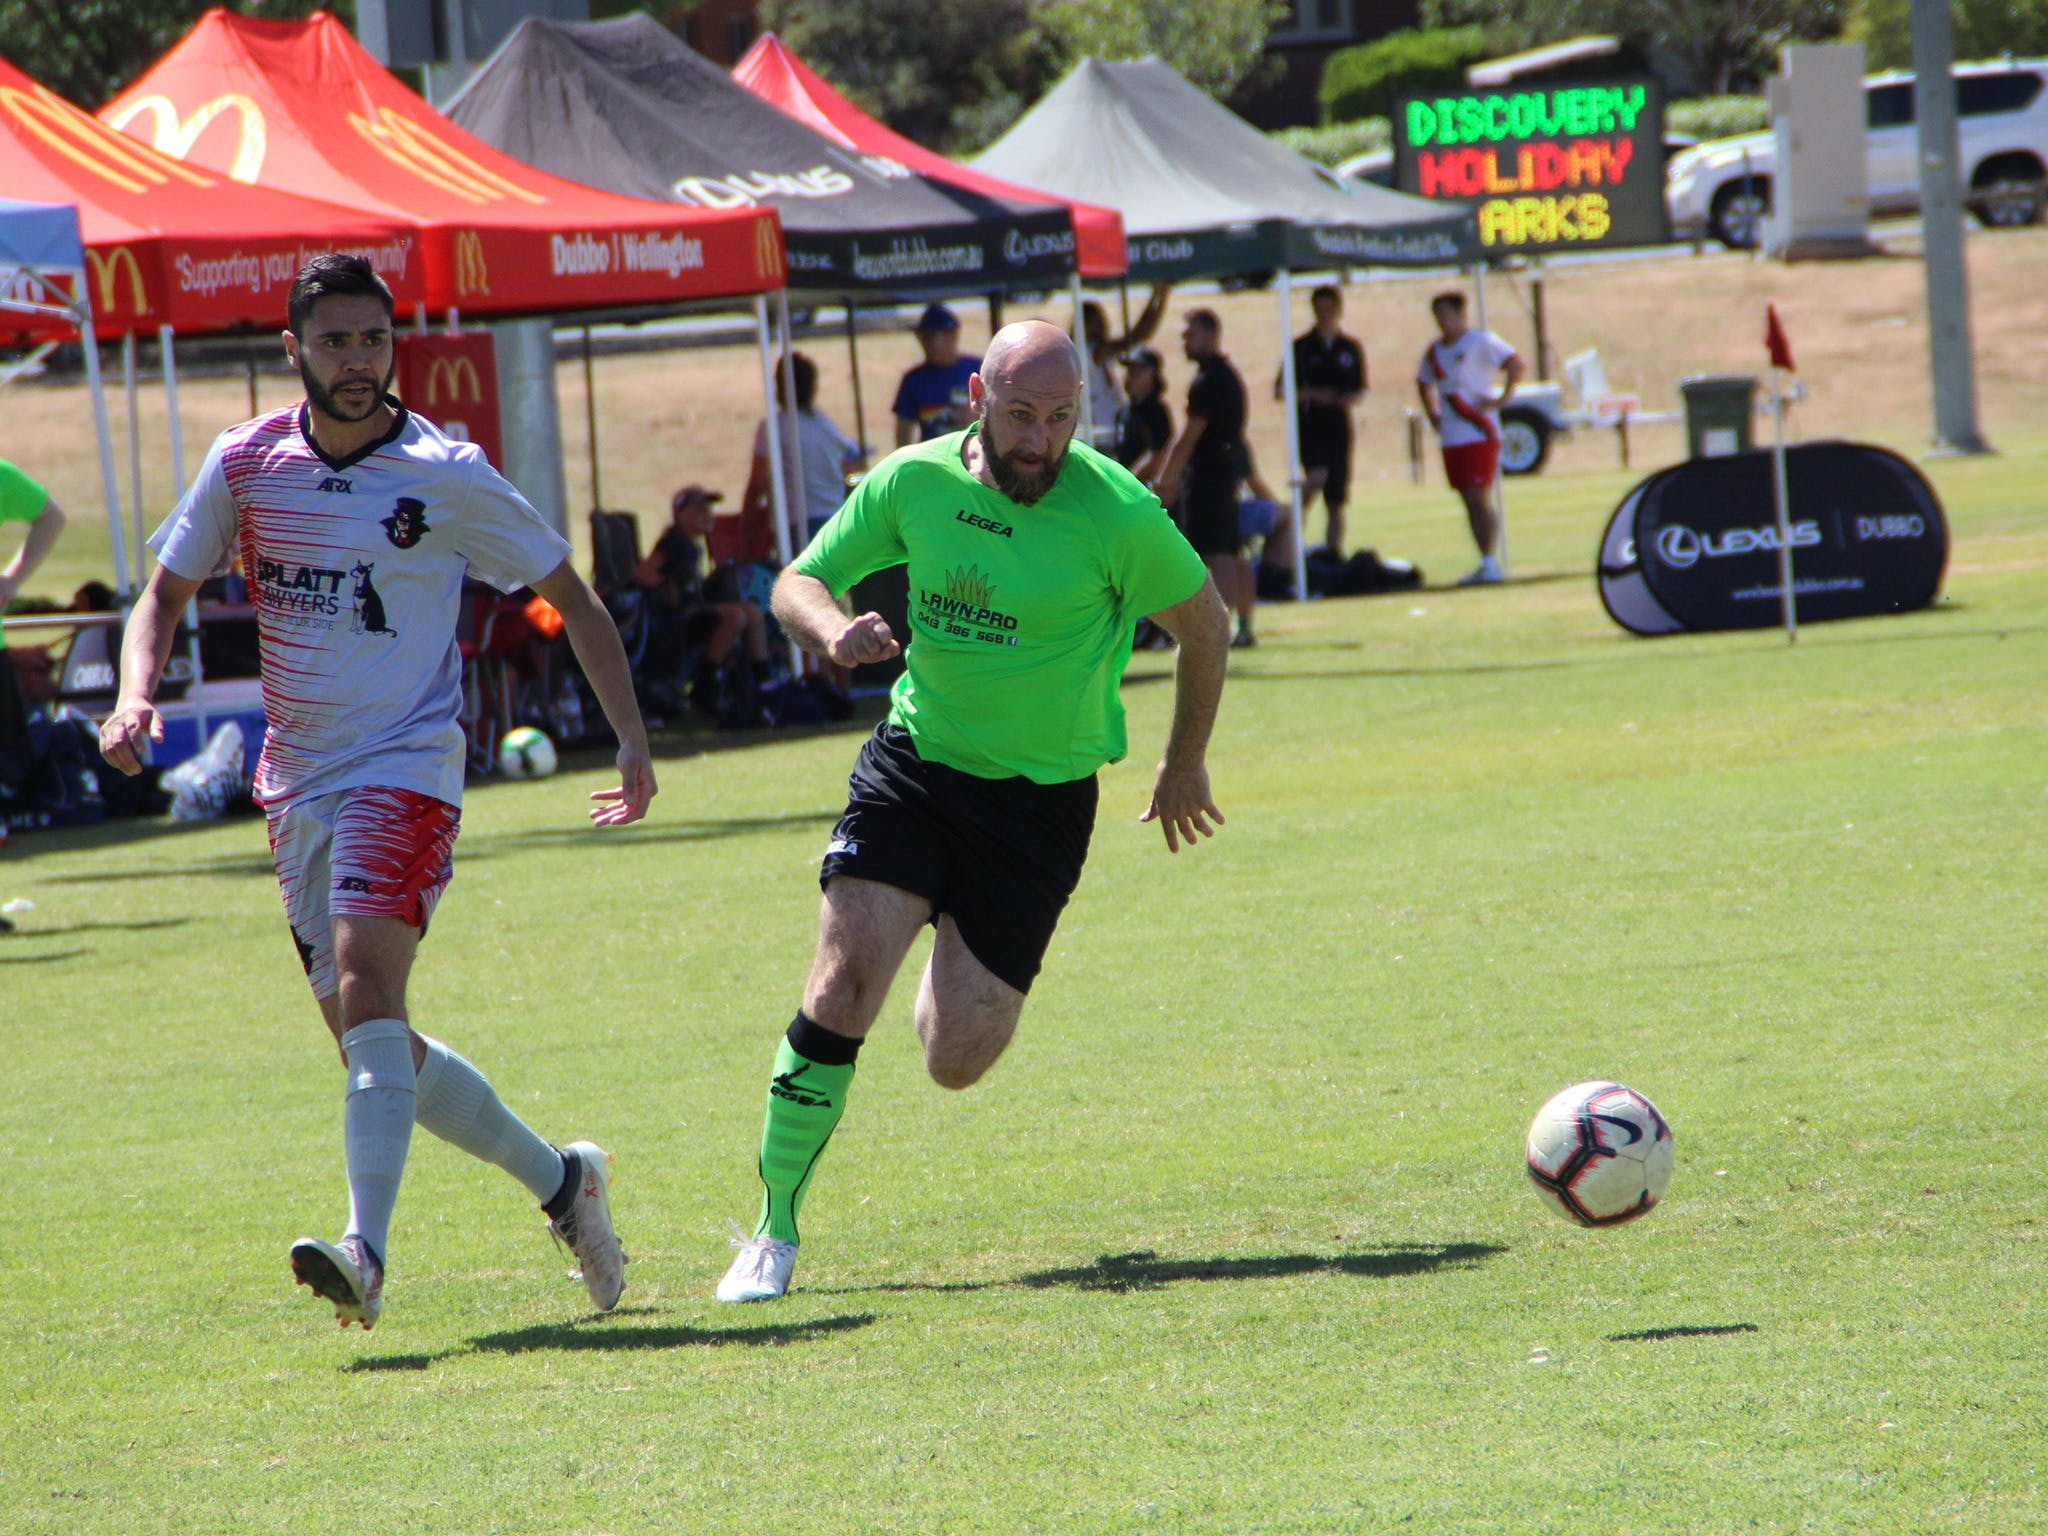 Dubbo Sixes Soccer Tournament - Tourism Bookings WA